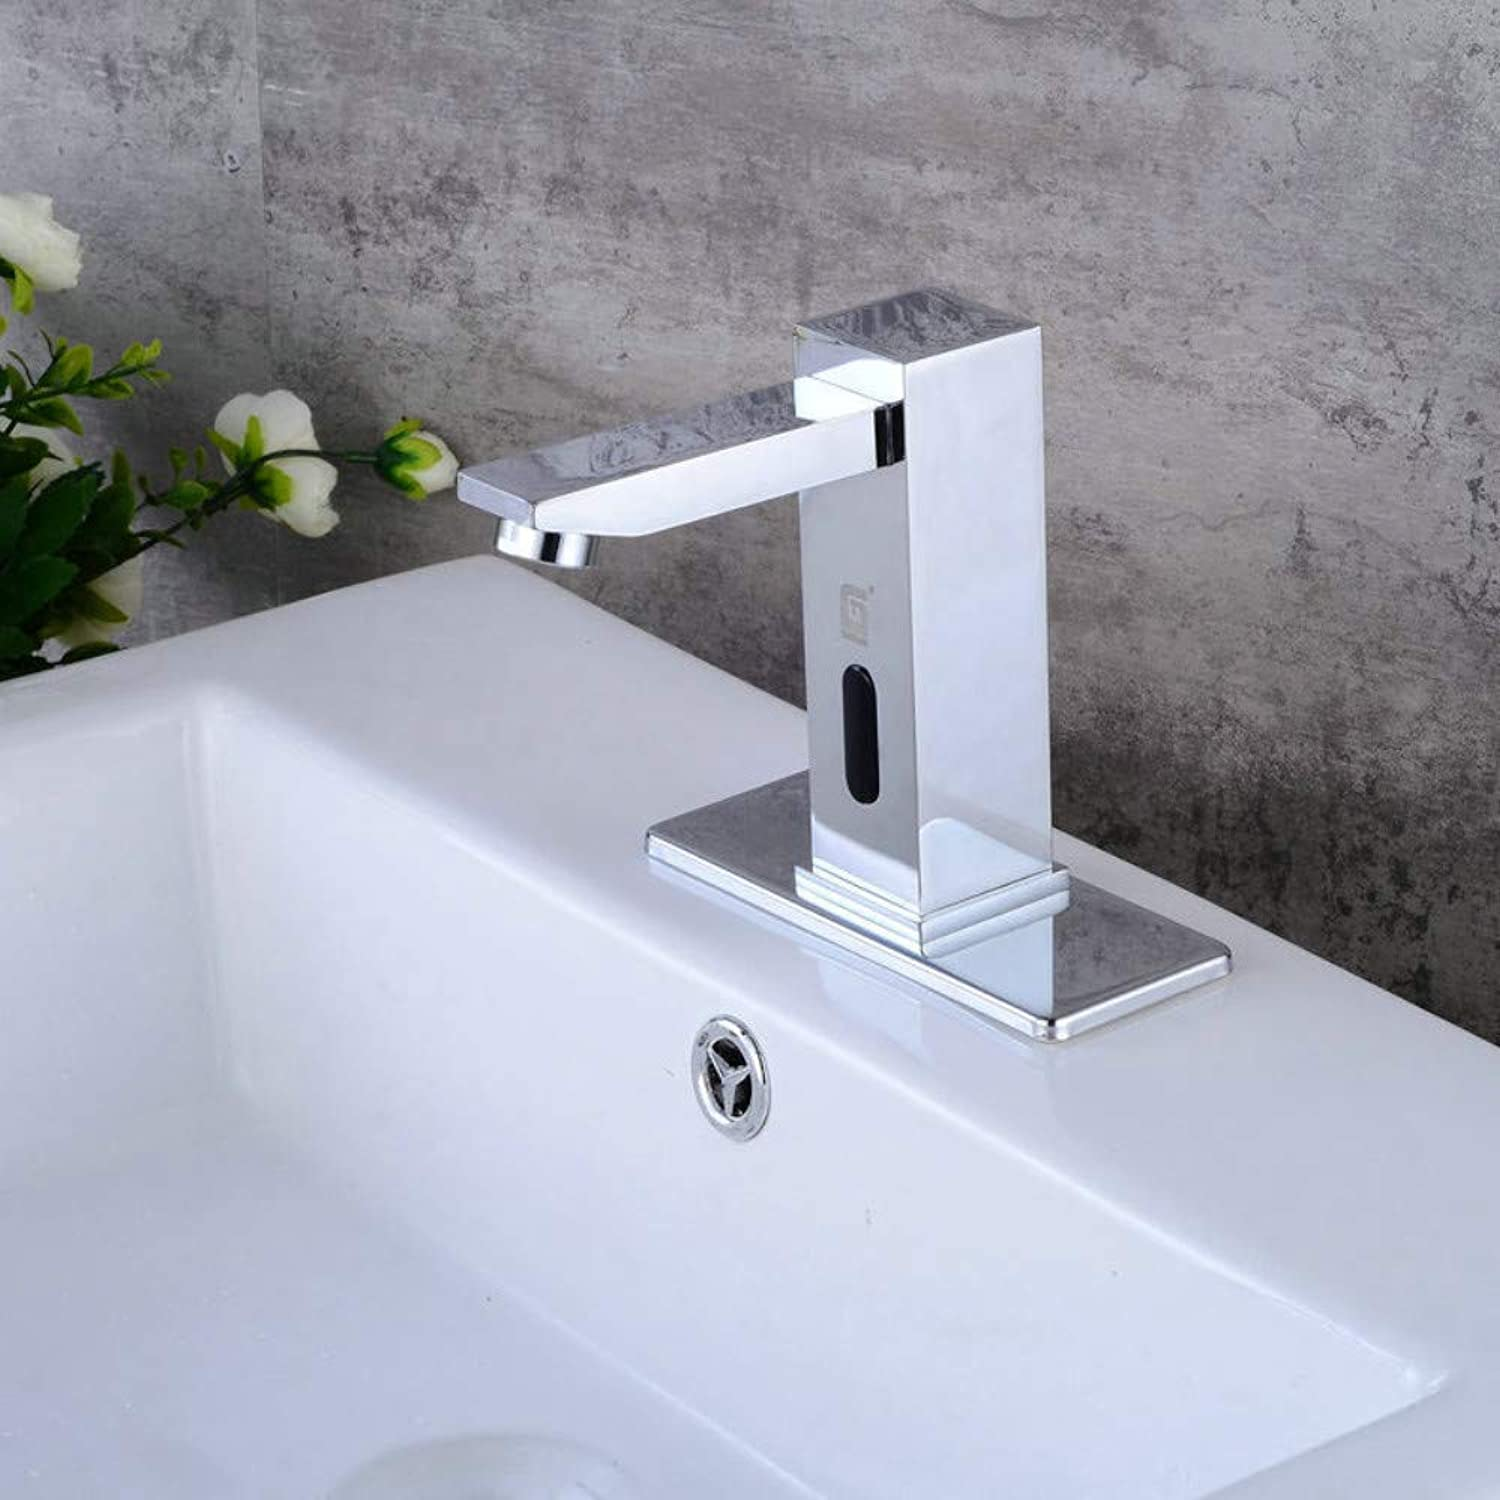 Kitchen Sink Taps Bathroom Sink Taps Plating With Faucet Faucet Plating Faucet